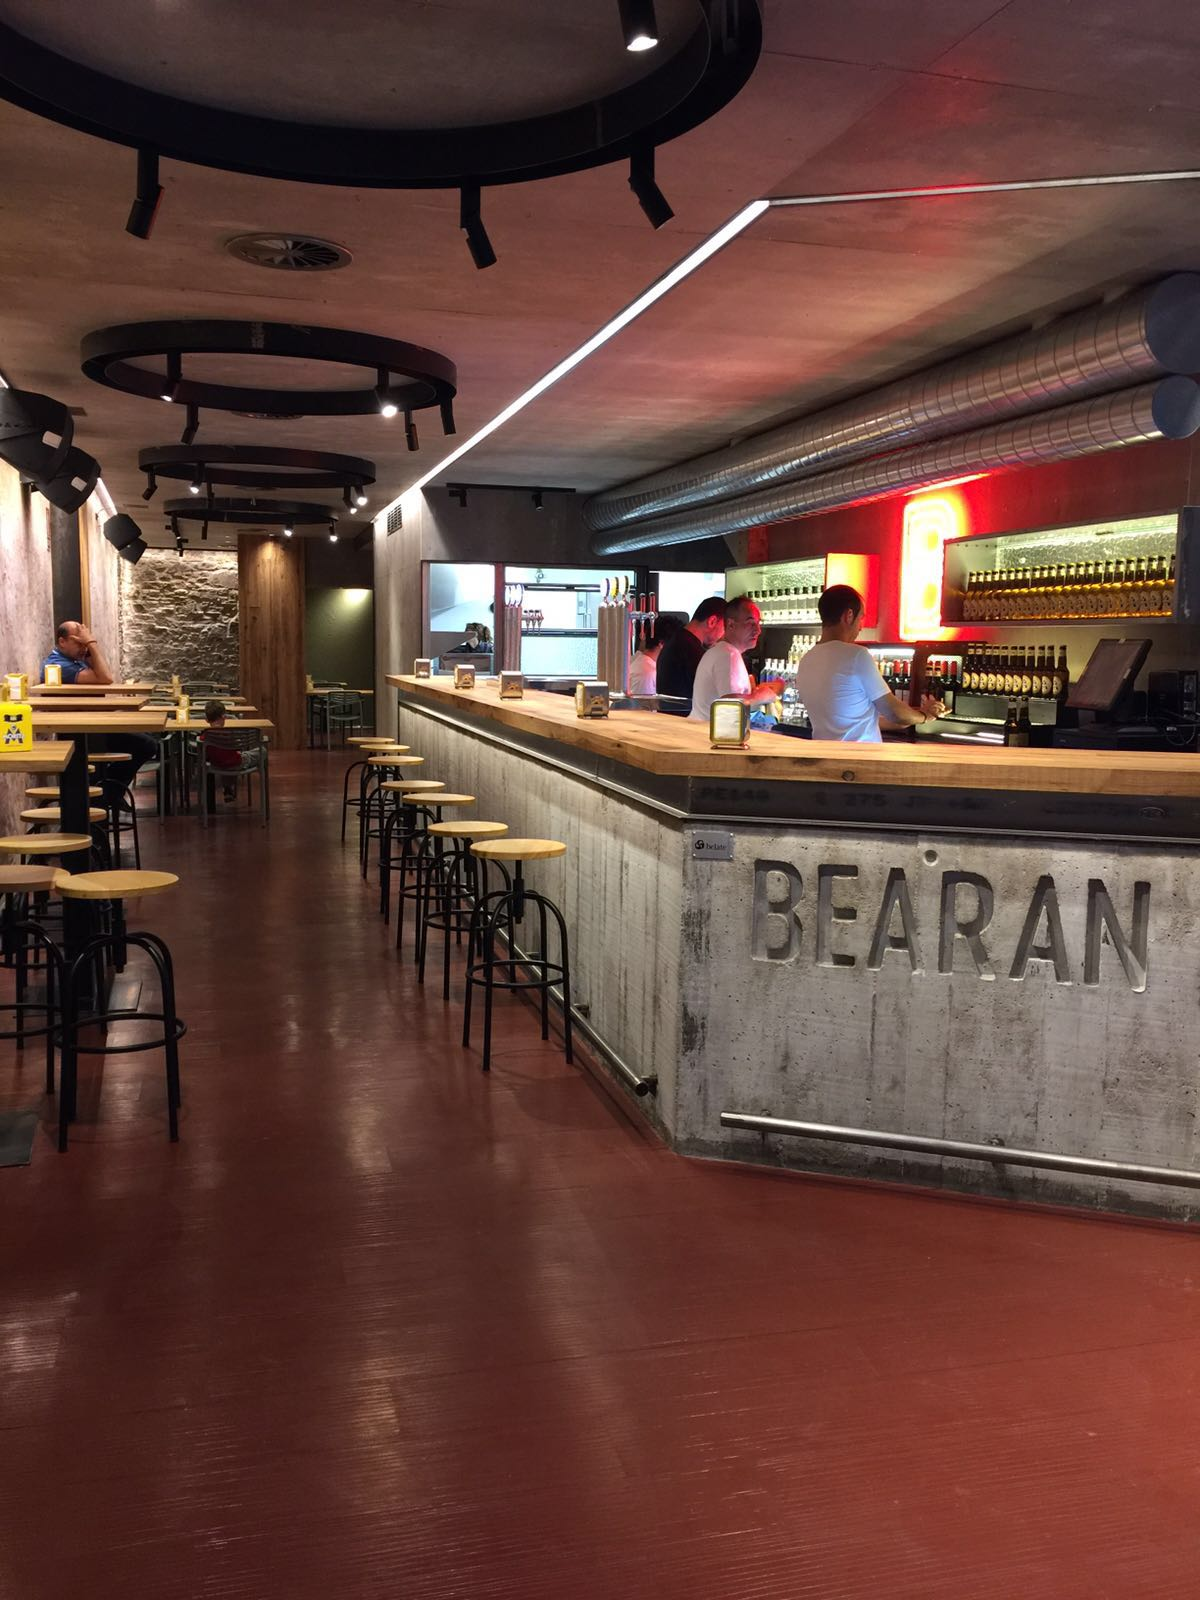 Reforma bar pamplona iru bearan belate